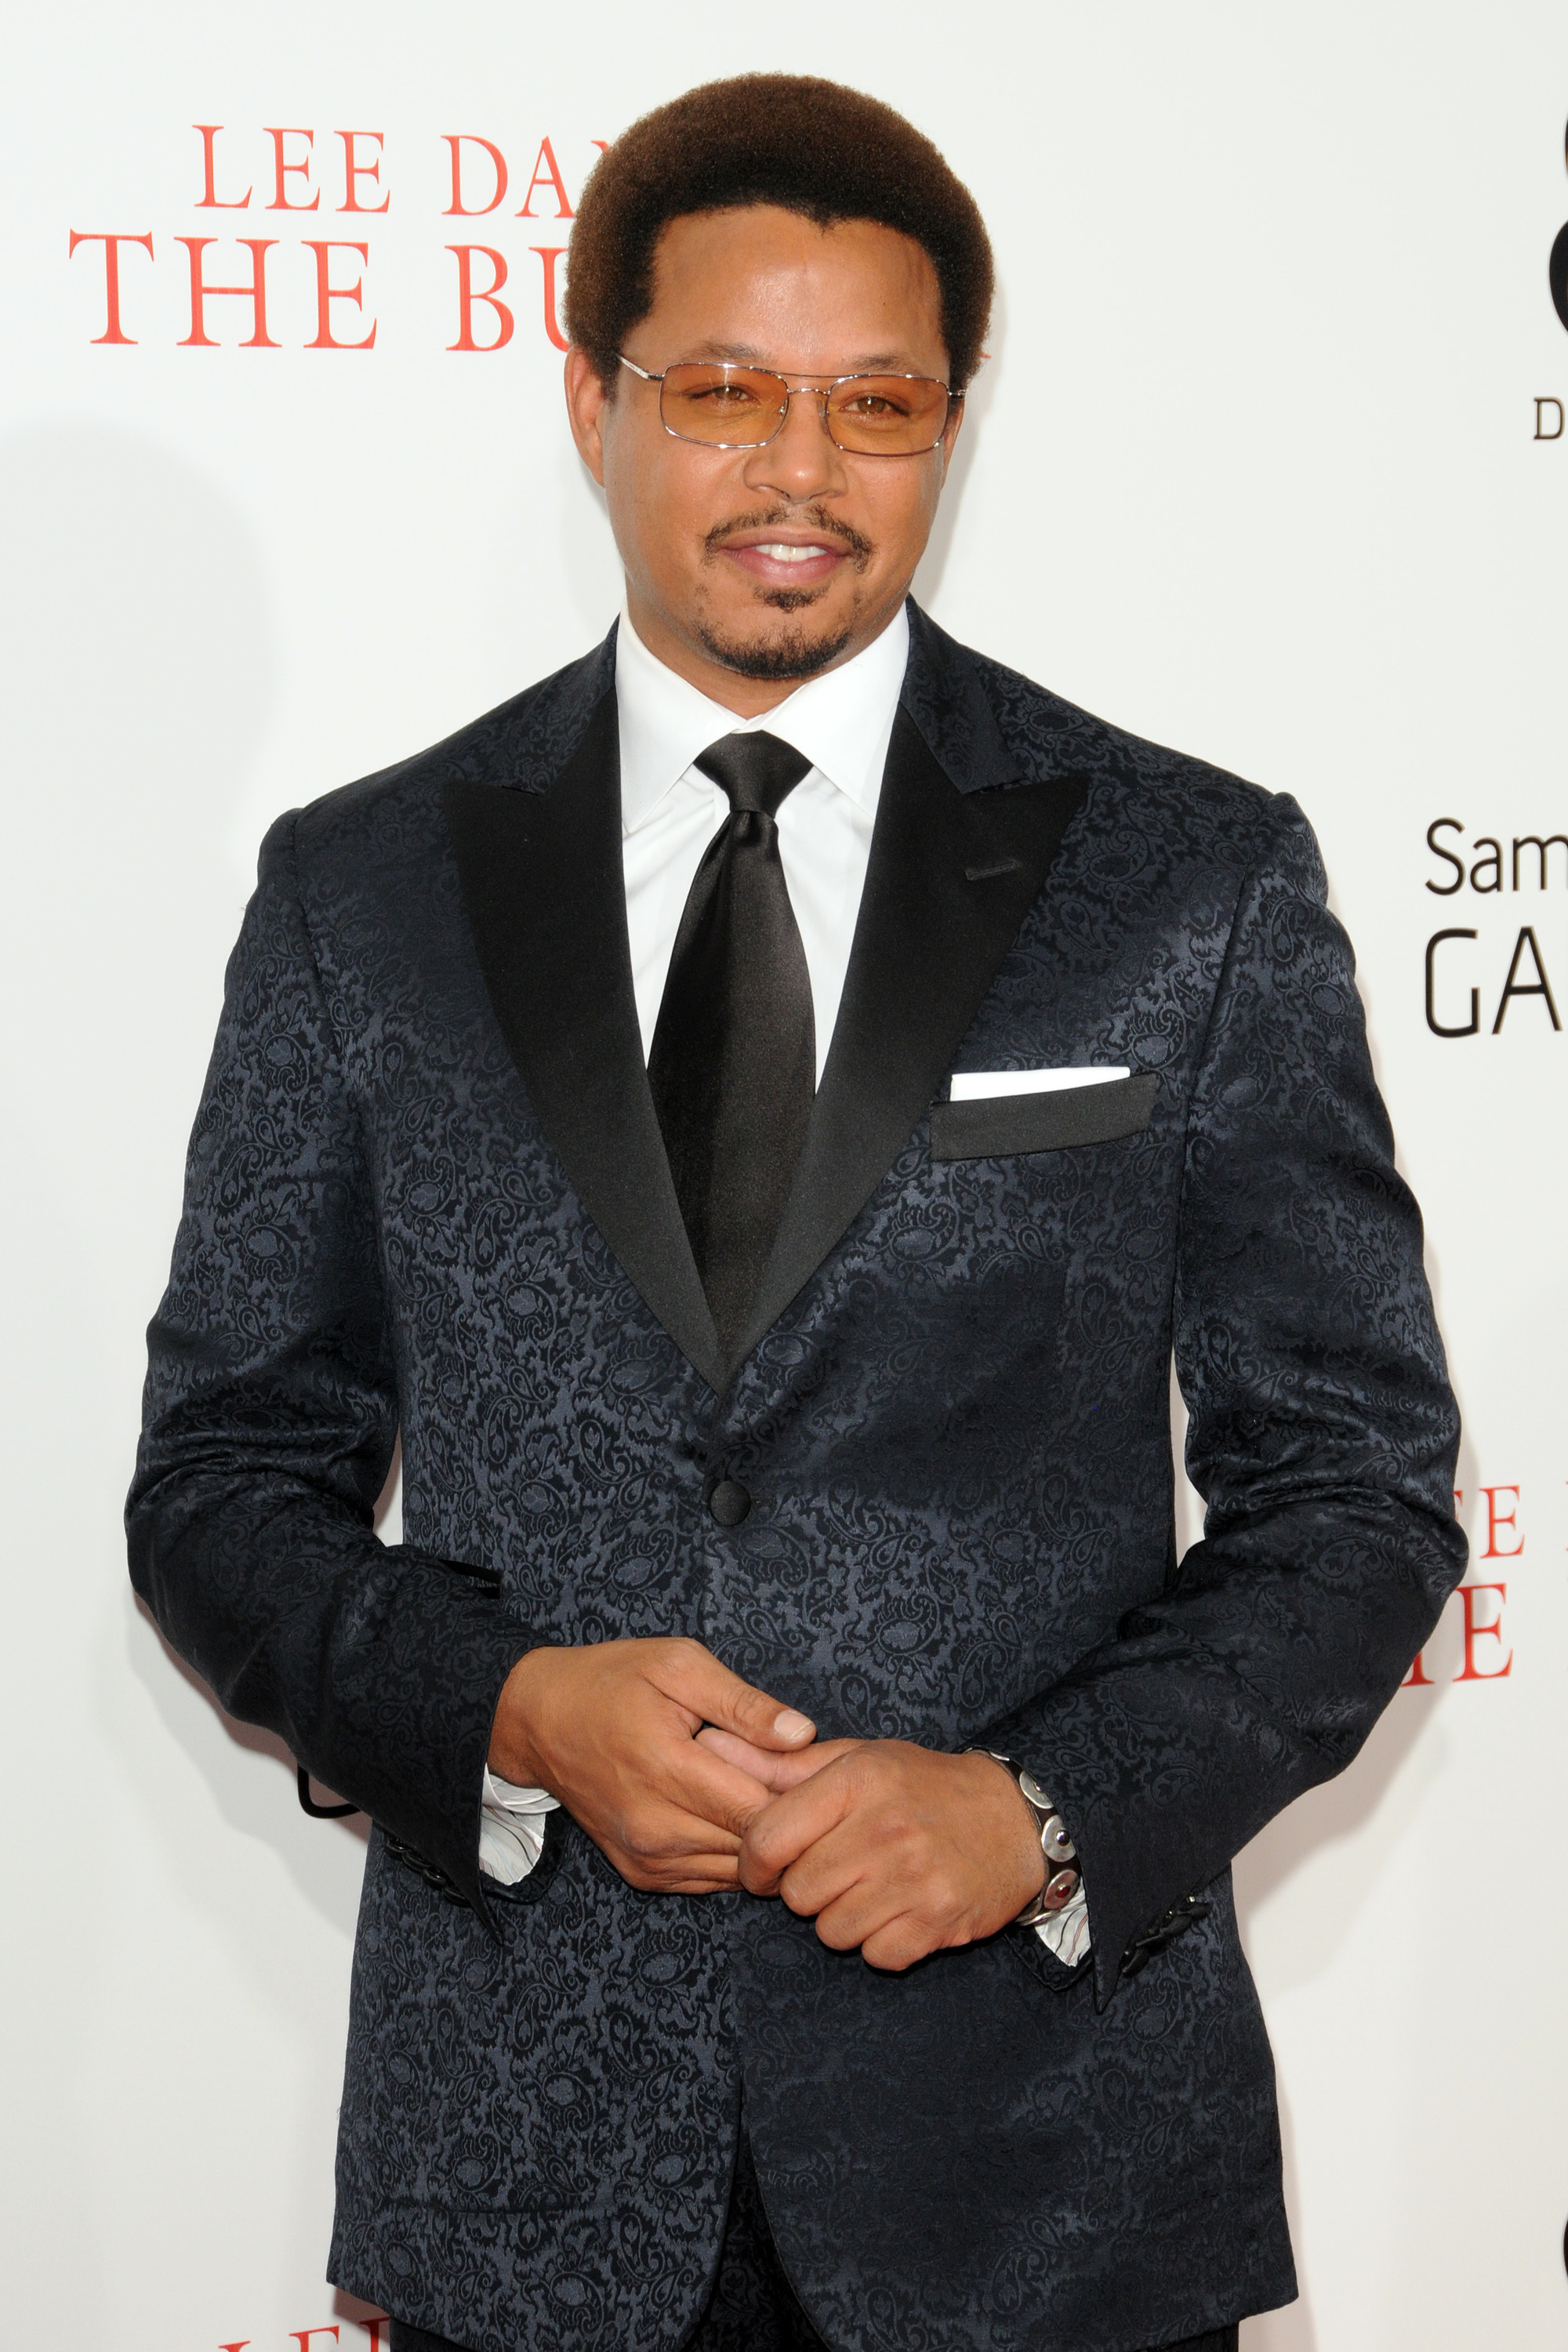 terrence howard the butler